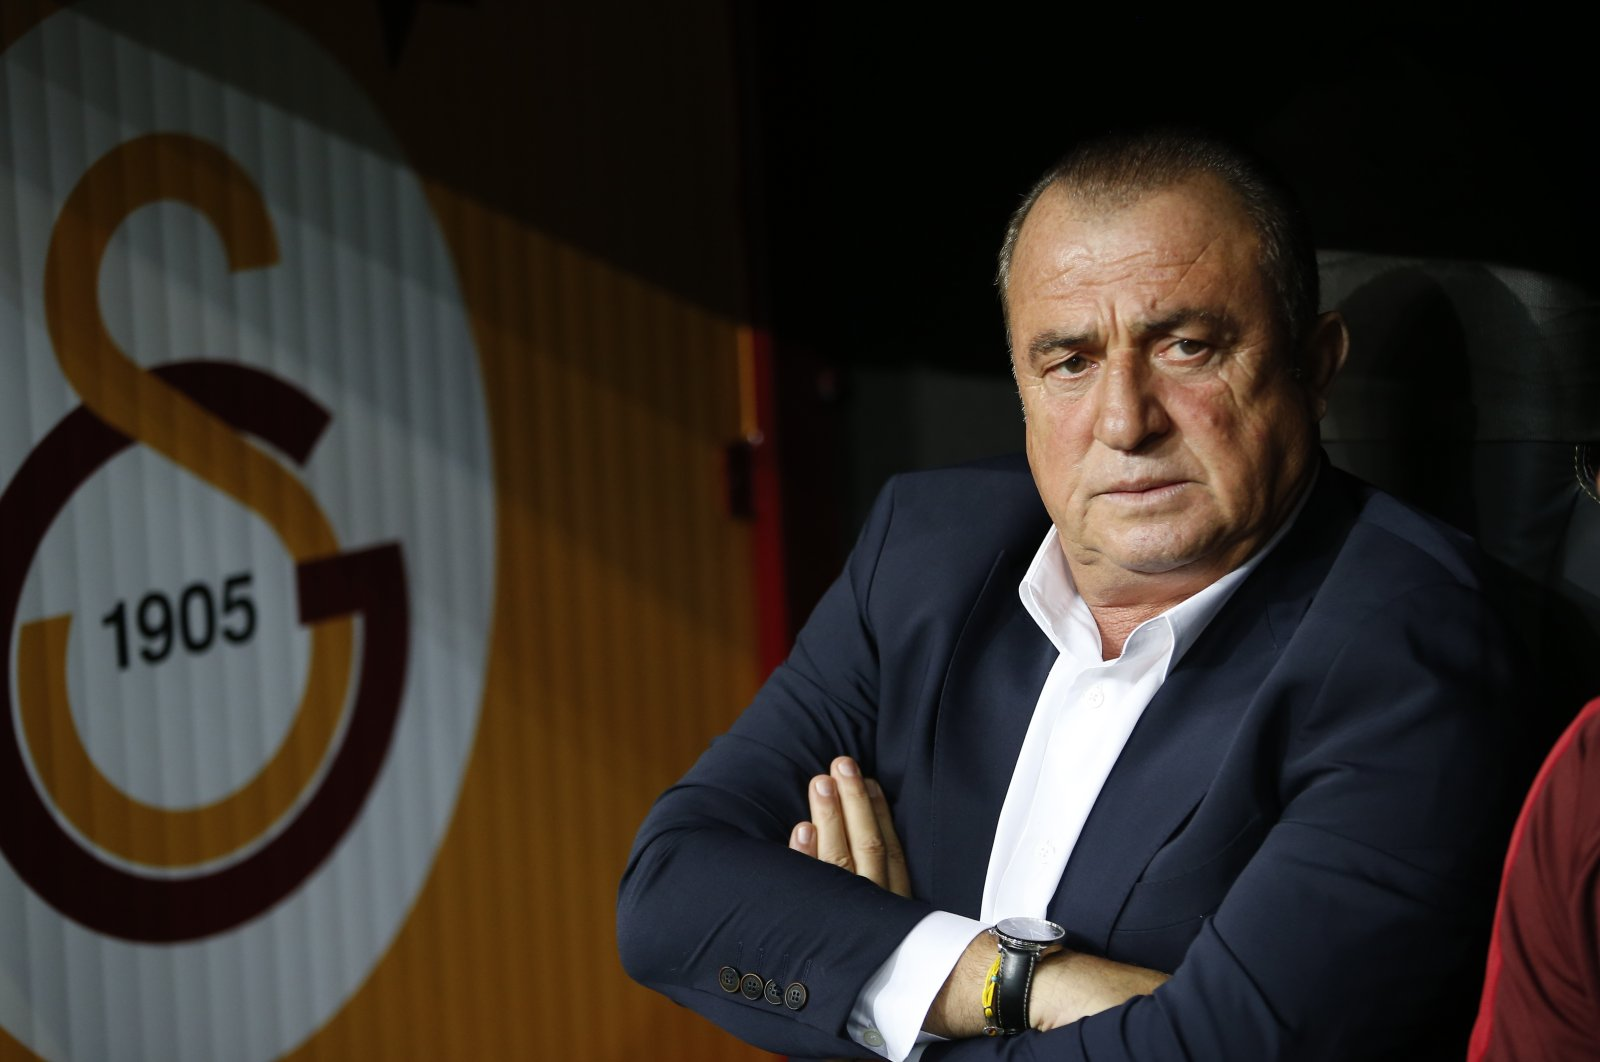 Fatih Terim, sits on the bench prior to a Champions League Group A soccer match in Istanbul, Turkey, Oct. 1, 2019. (AP Photo)